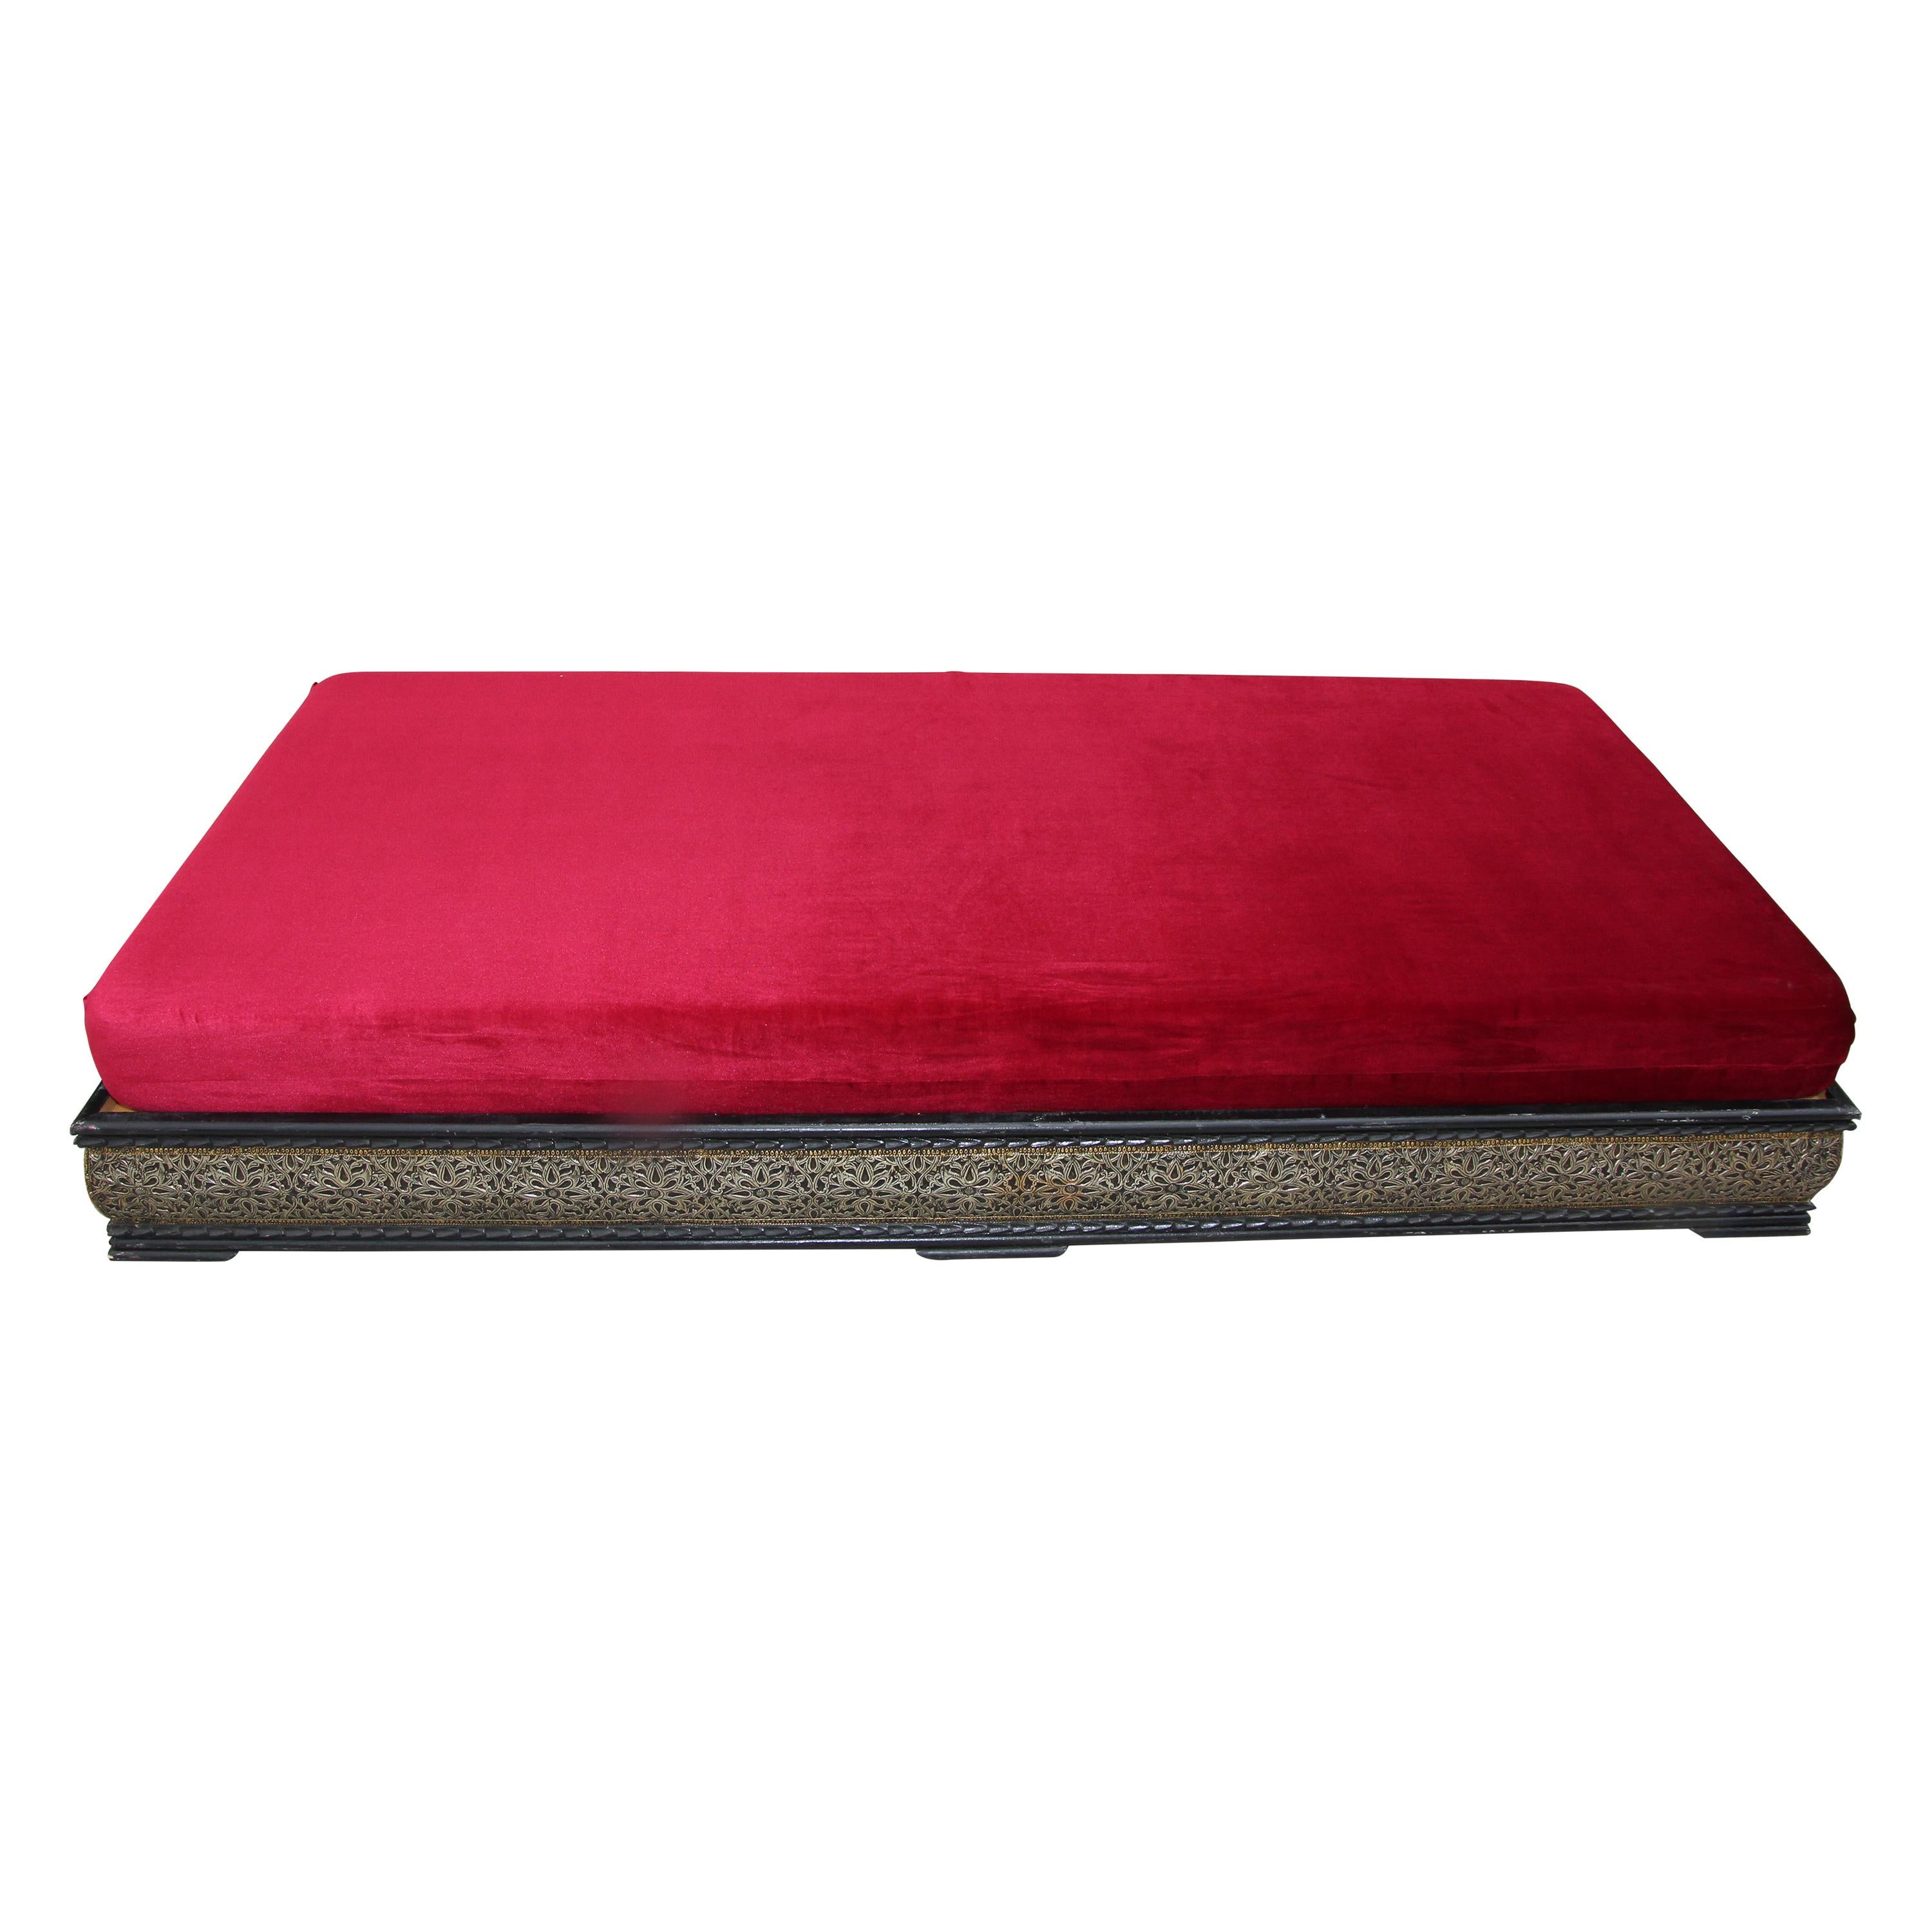 Vintage Moroccan Settee Low bench, Day Bed with Red Cushion